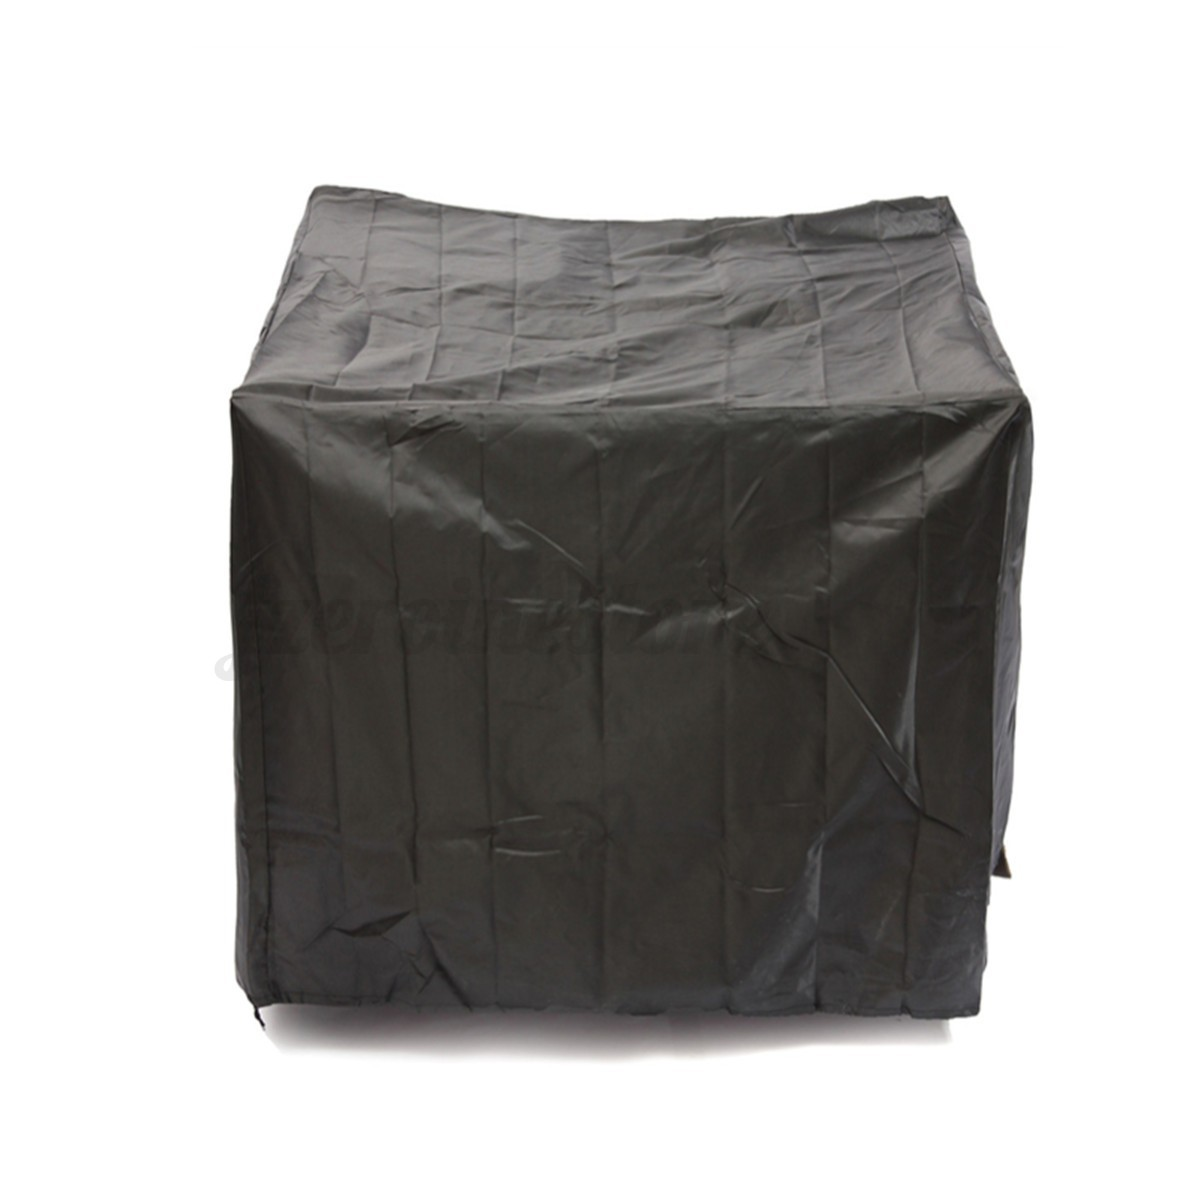 Heavy Duty Furniture Cover Water Resistant Protective Patio Garden Wicker Sof